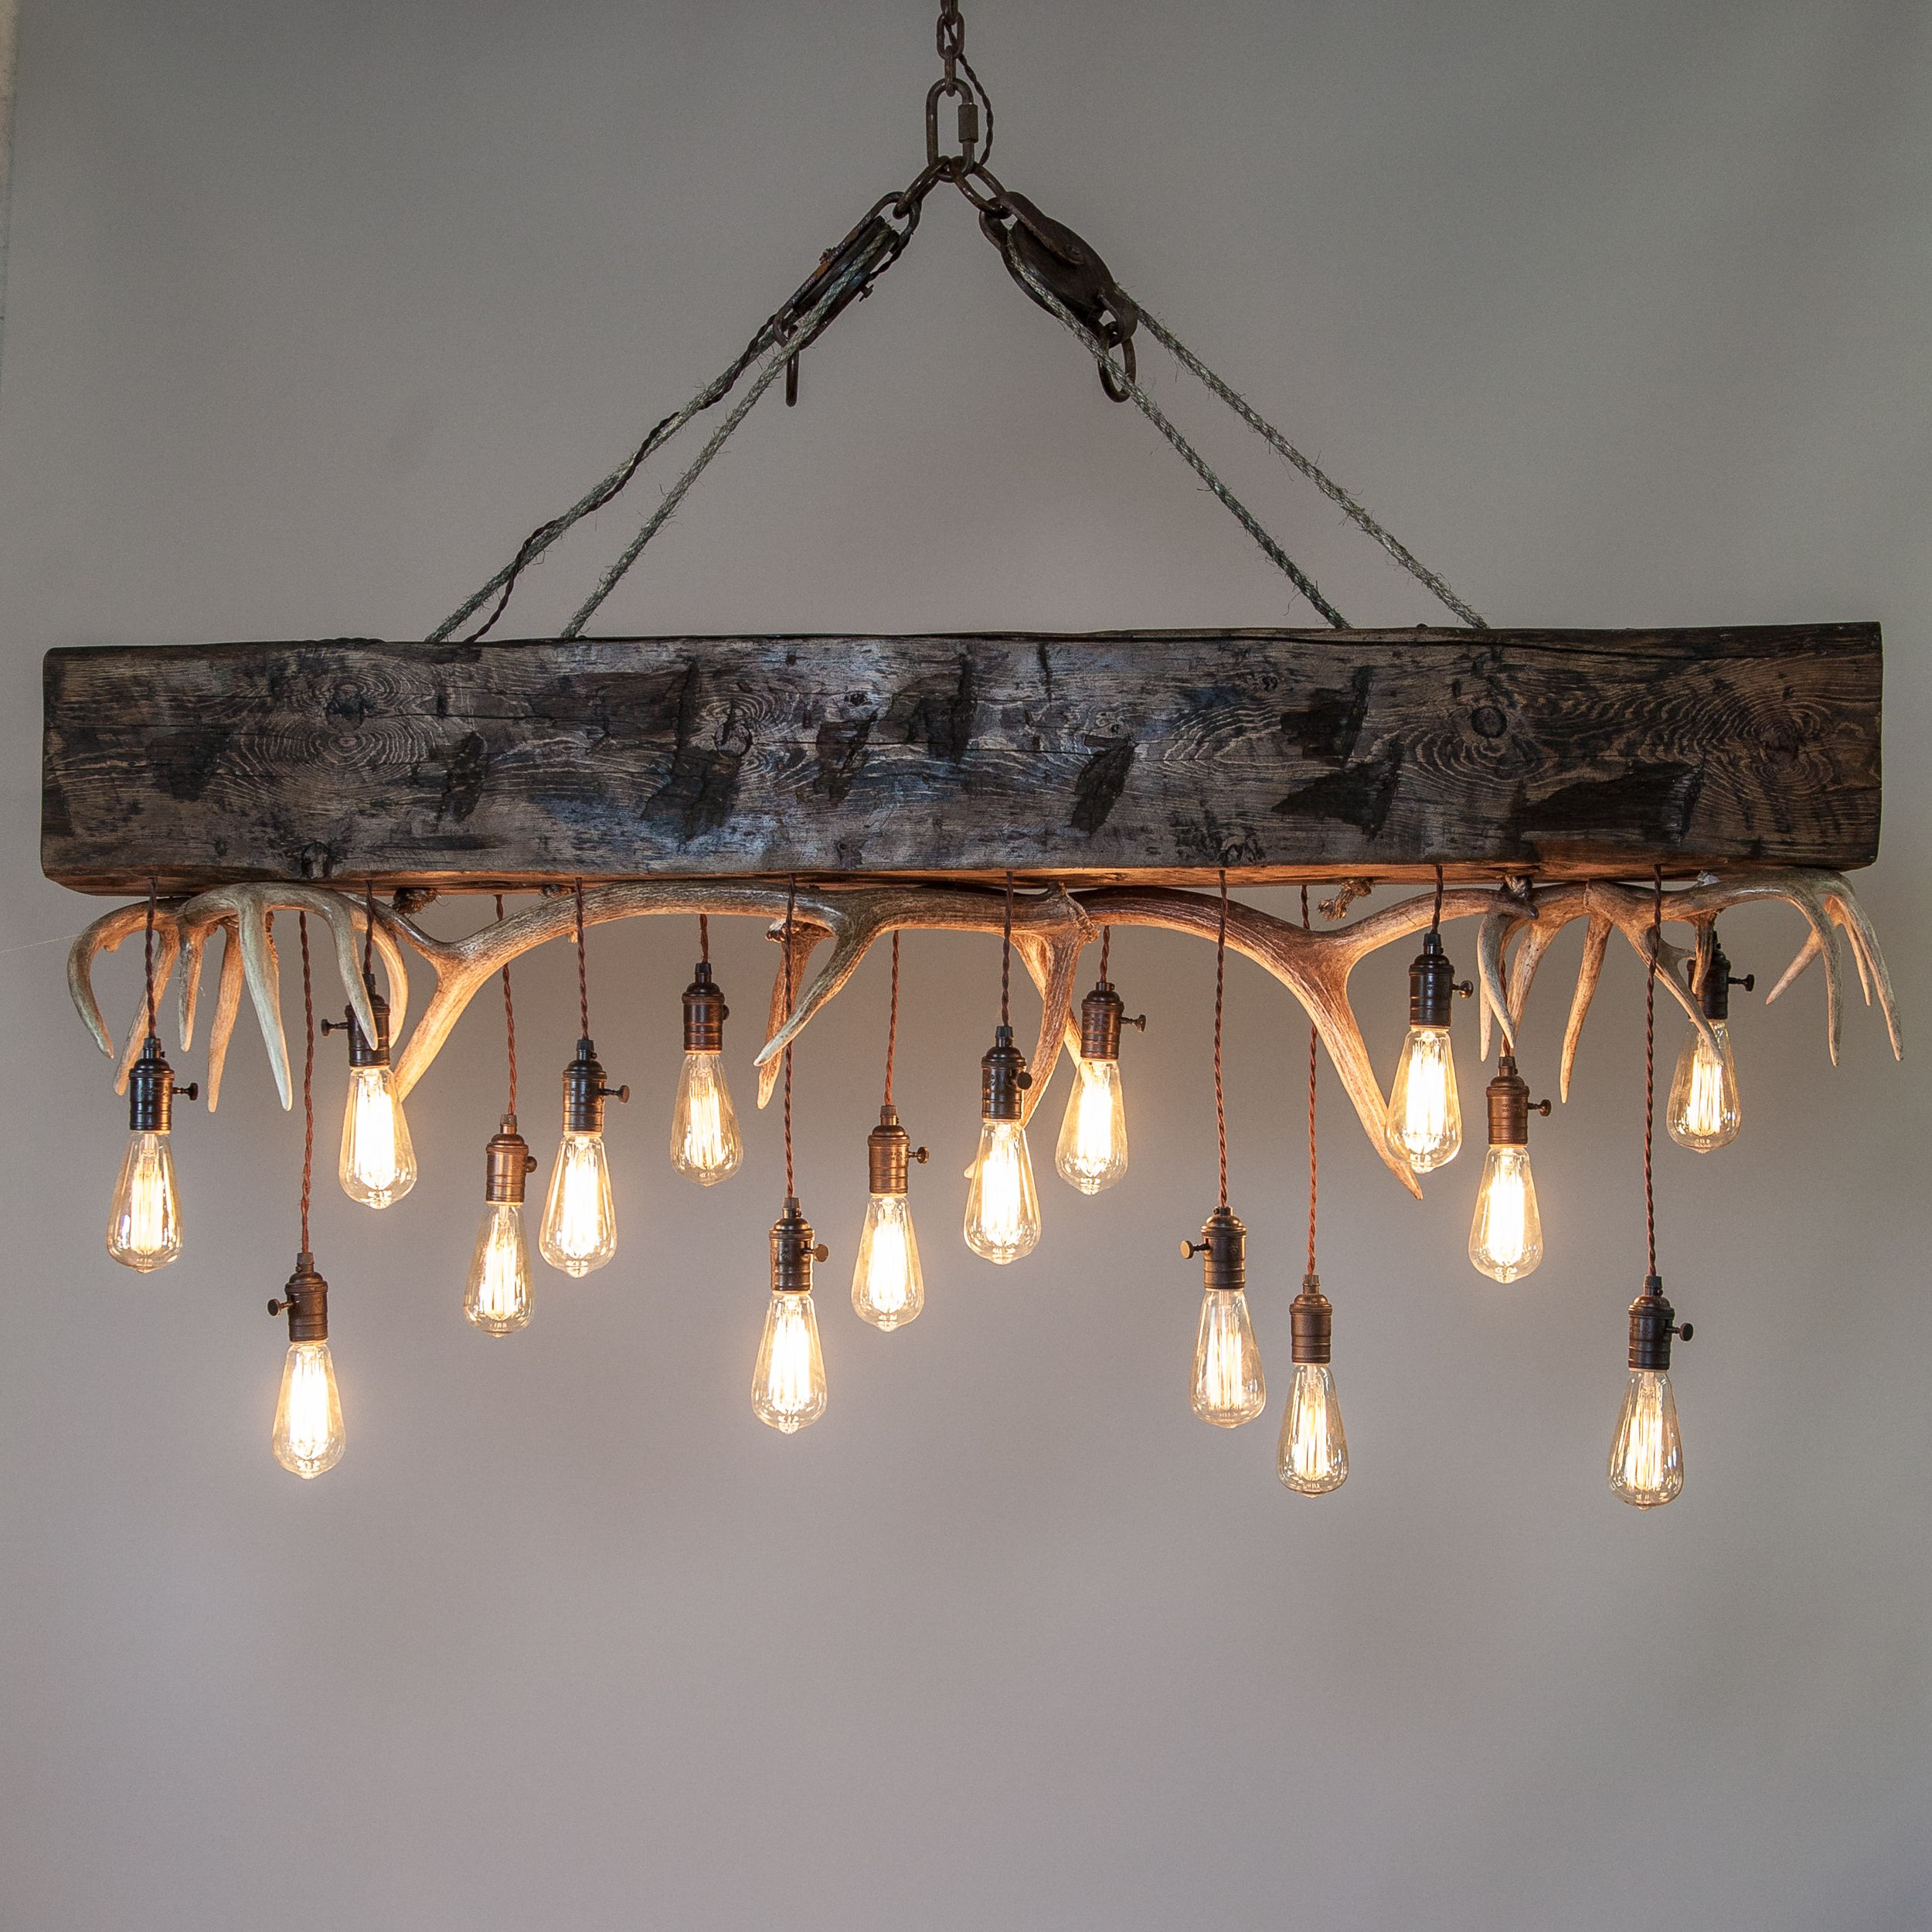 Shed antlers and a large finished timber as focal point in our new mountain modern timber chandelier designs with antler showcase your style with our antler chandeliers and custom made antler products arubaitofo Image collections